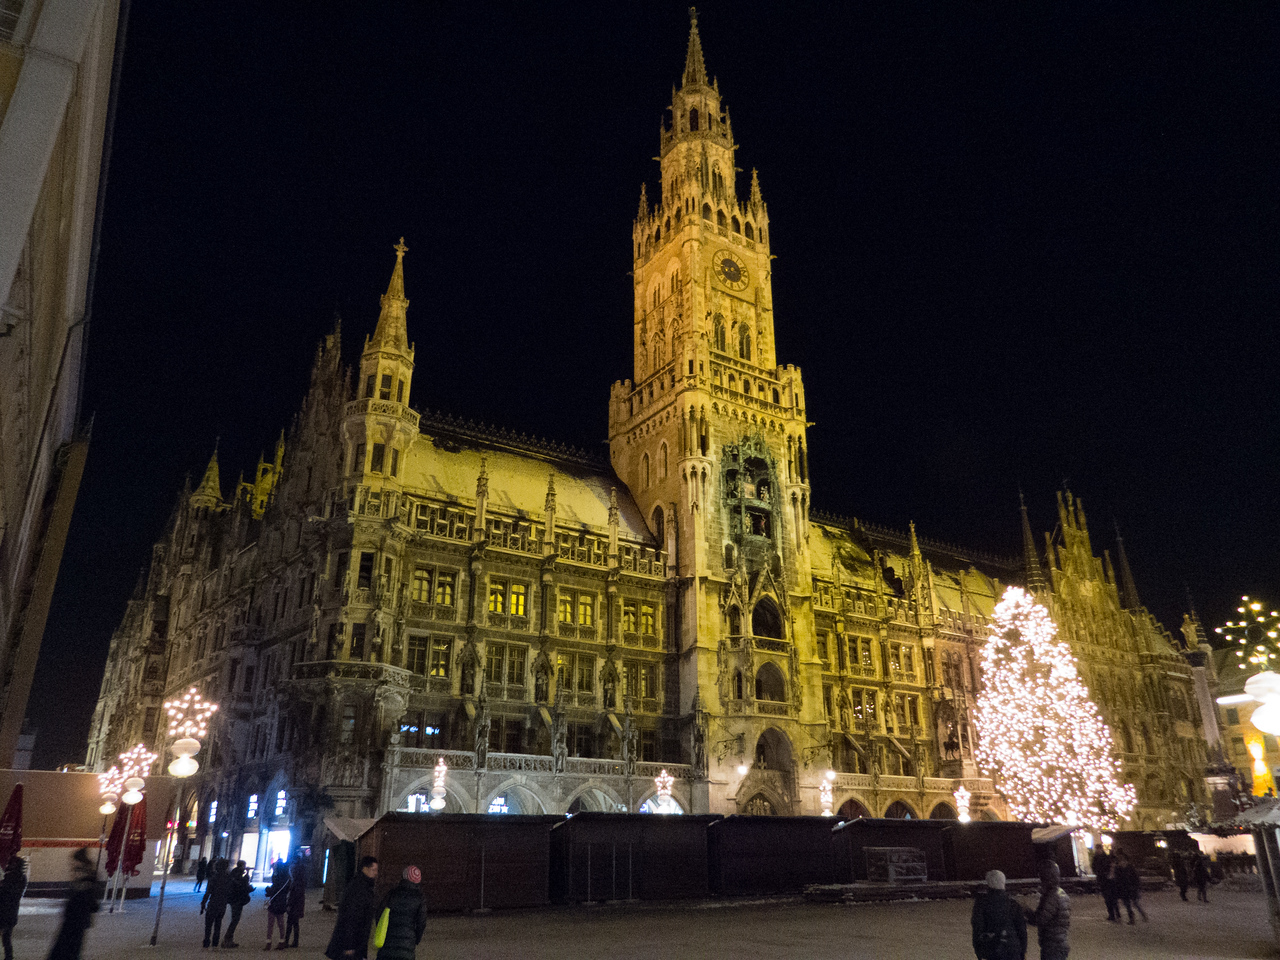 Neues Rathaus at night